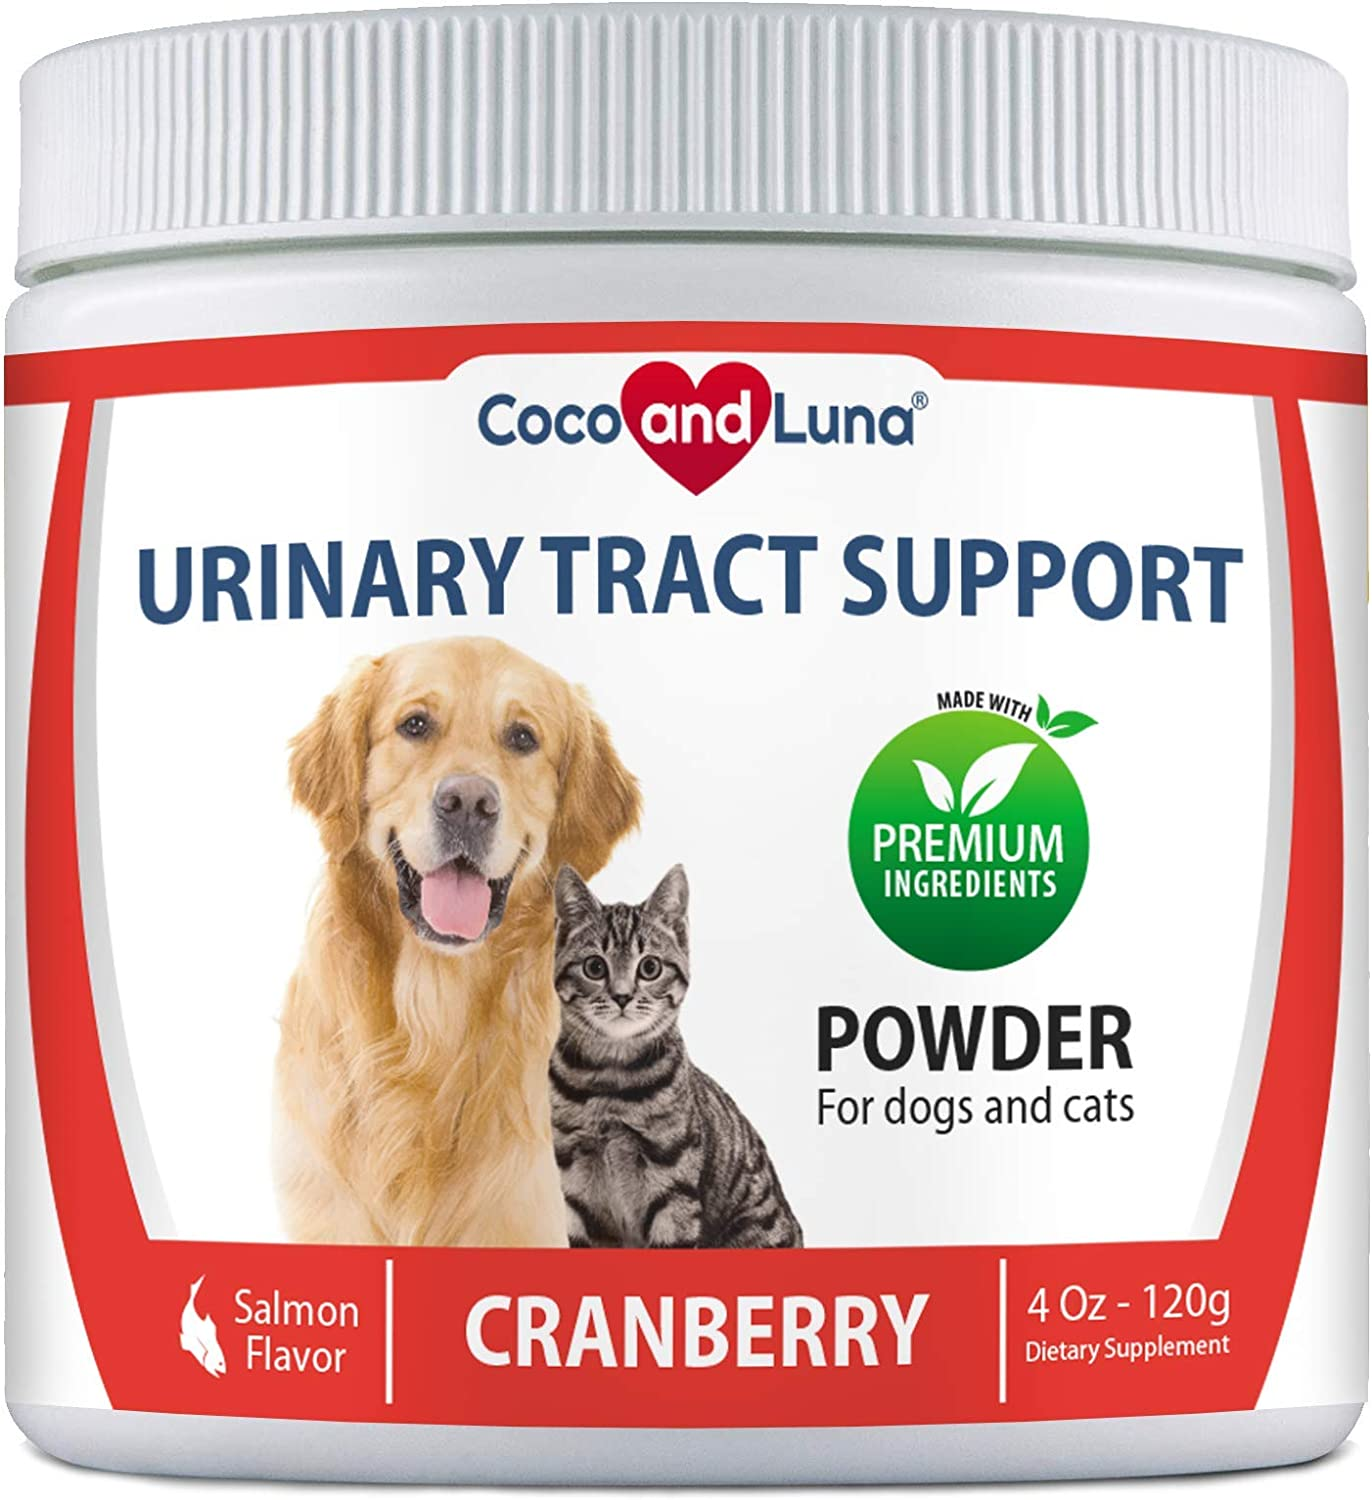 Cranberry for Dogs and Cats - Urinary Tract Support, Prevents UTI, Bladder Infections, Bladder Stones and Dog Incontinence - 4 Oz Powder (120g)